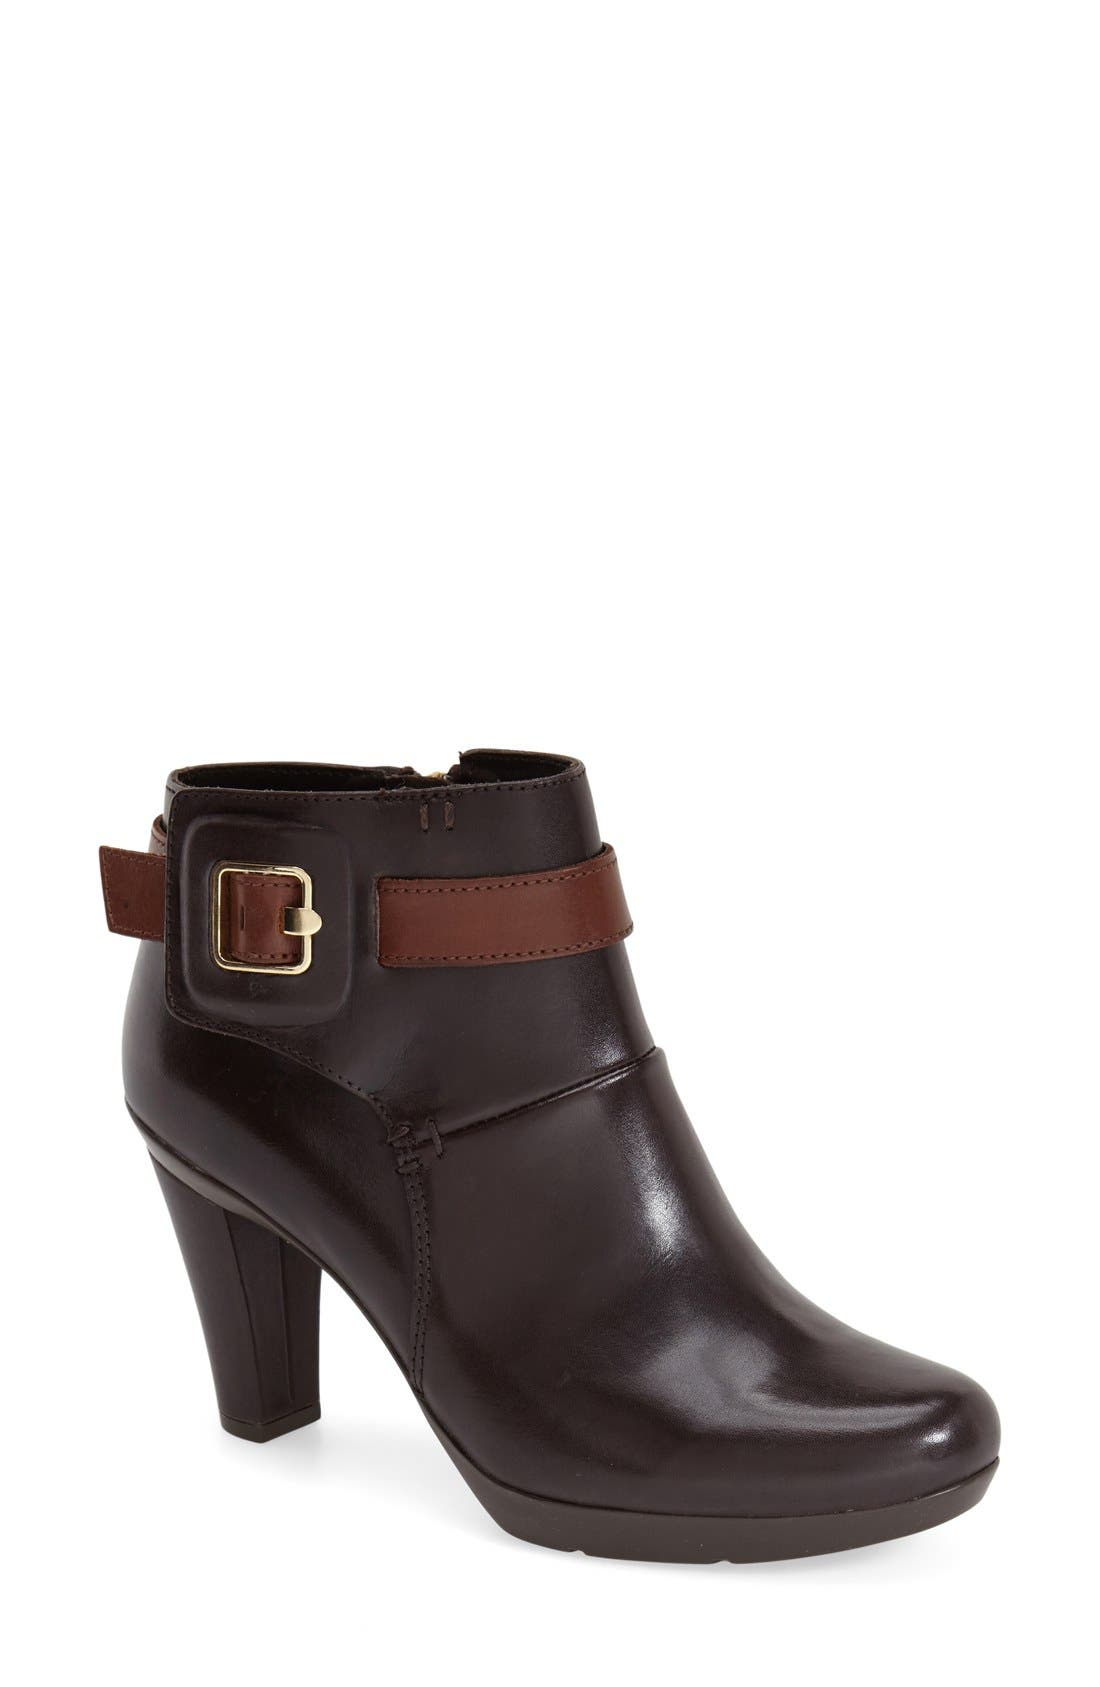 'Inspiration' Bootie,                         Main,                         color, Dark Brown Smooth Leather